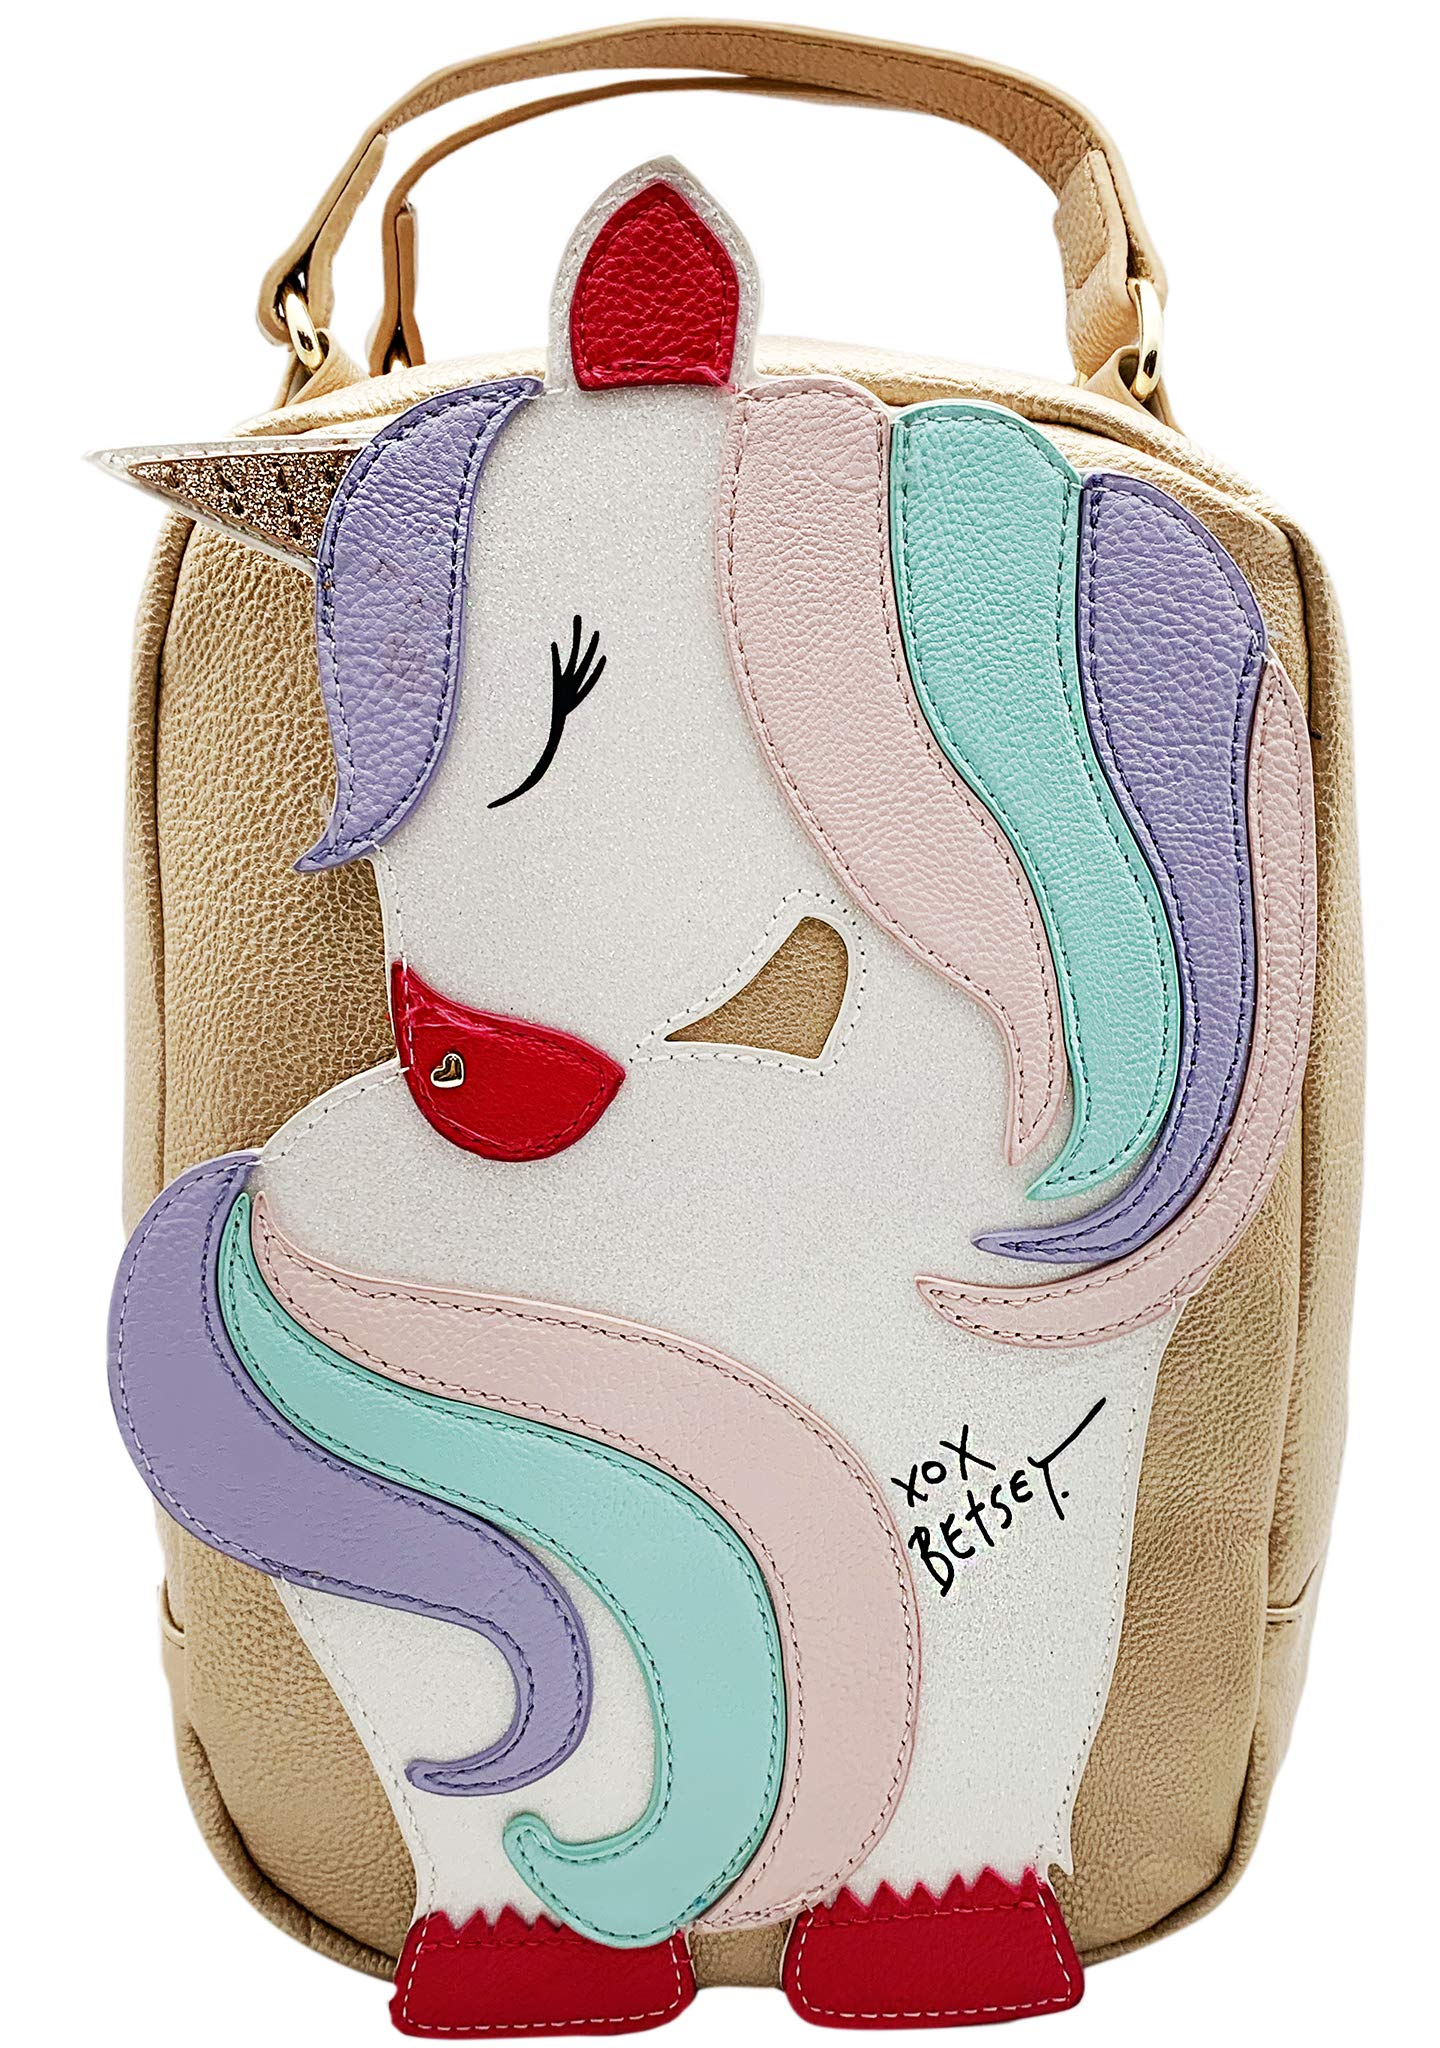 Betsey Johnson Unicorn Insulated Lunch Tote Gold Multi by Betsey Johnson